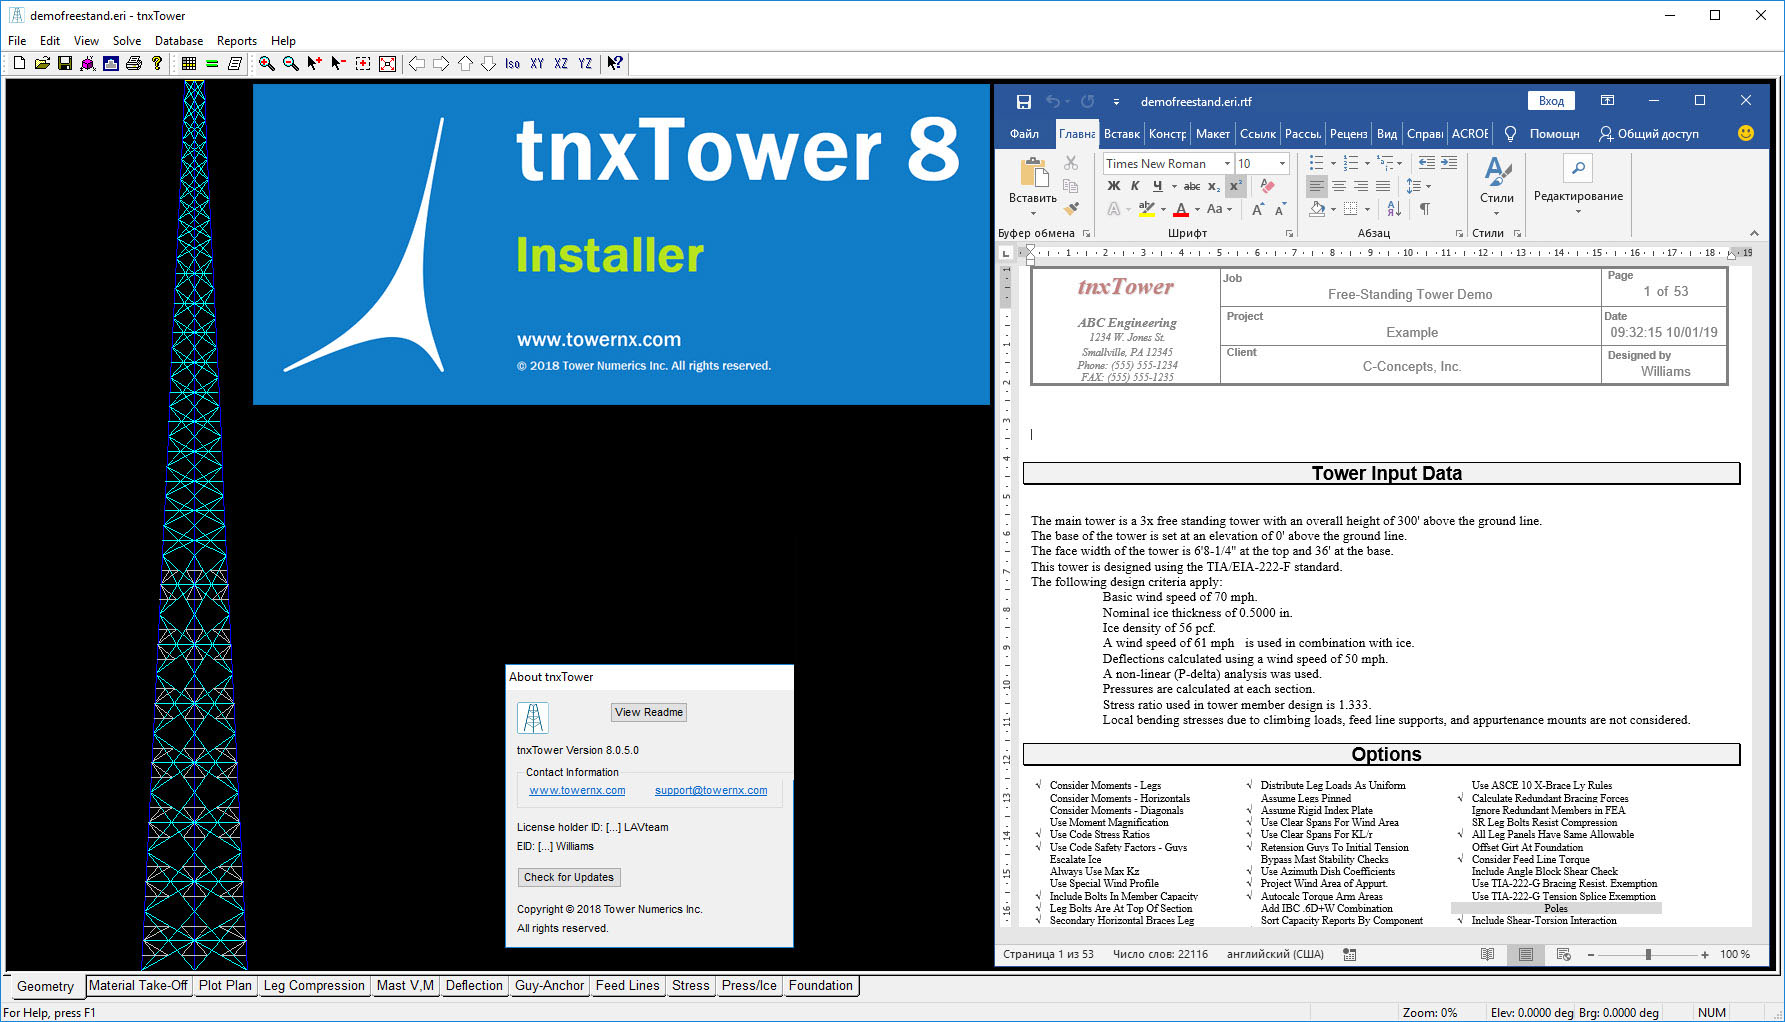 Working with Tower Numerics tnxTower 8.0.5.0 full license